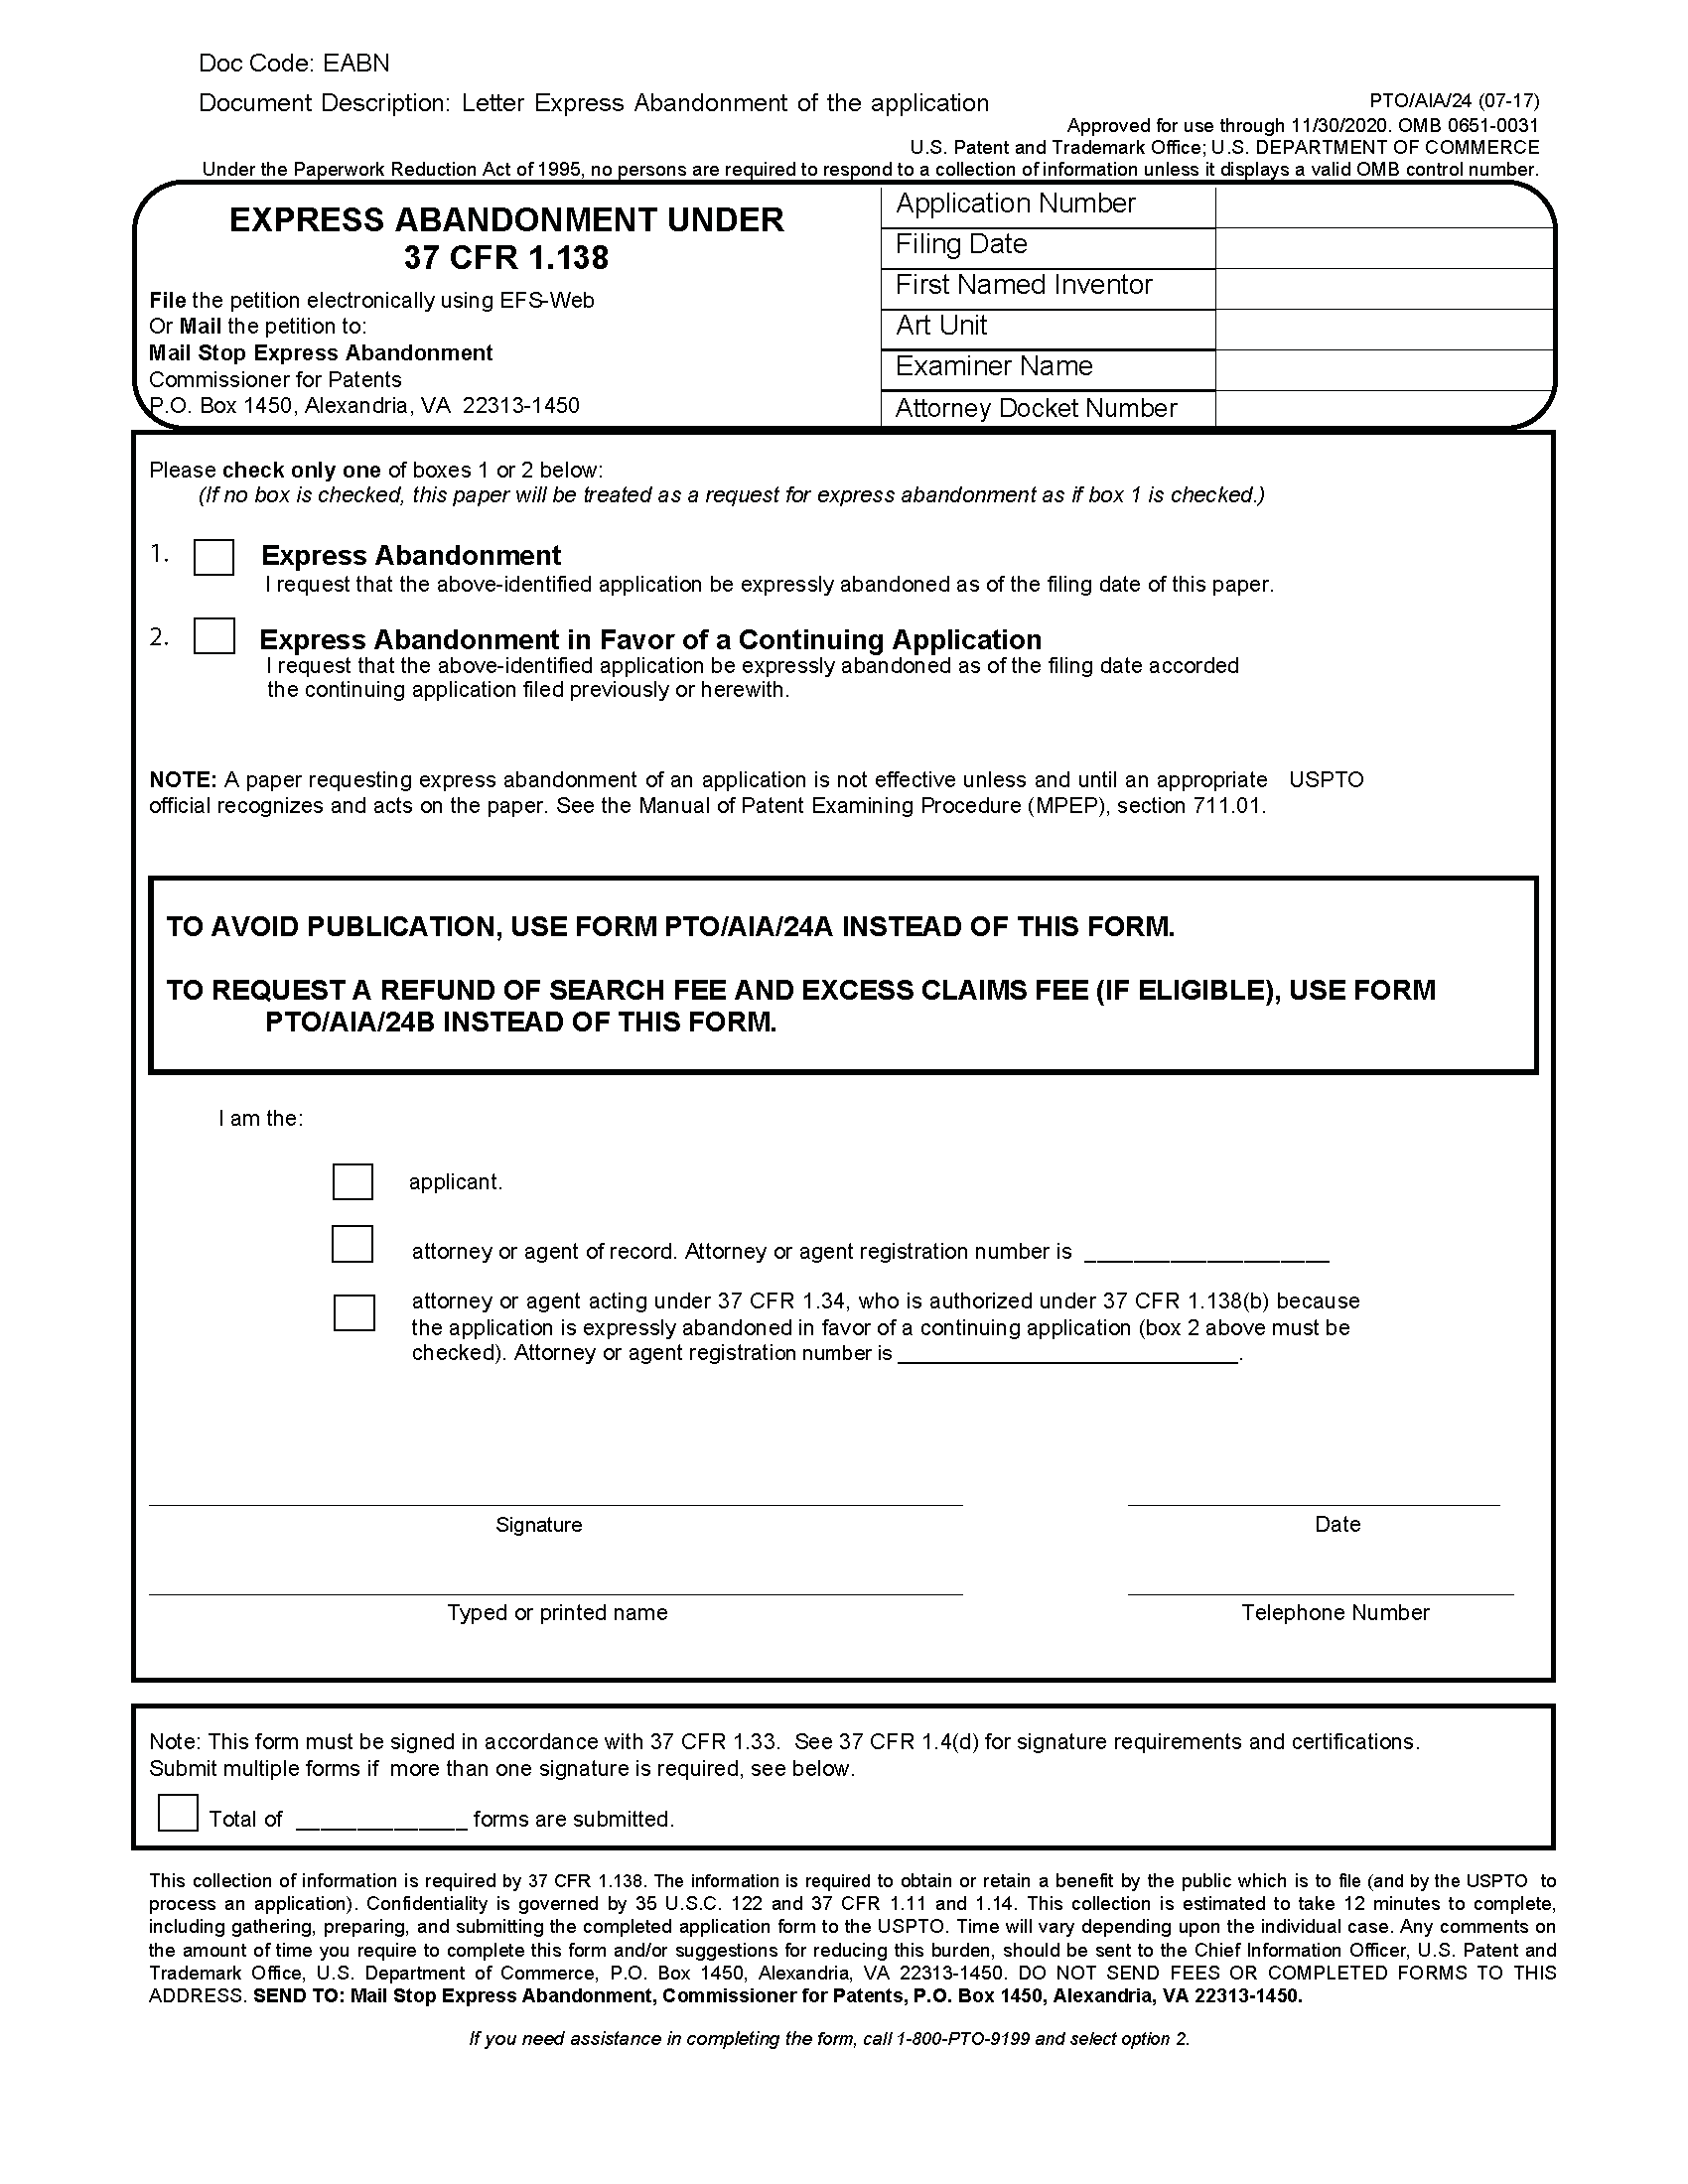 Abandonment Worksheet | Printable Worksheets and Activities for